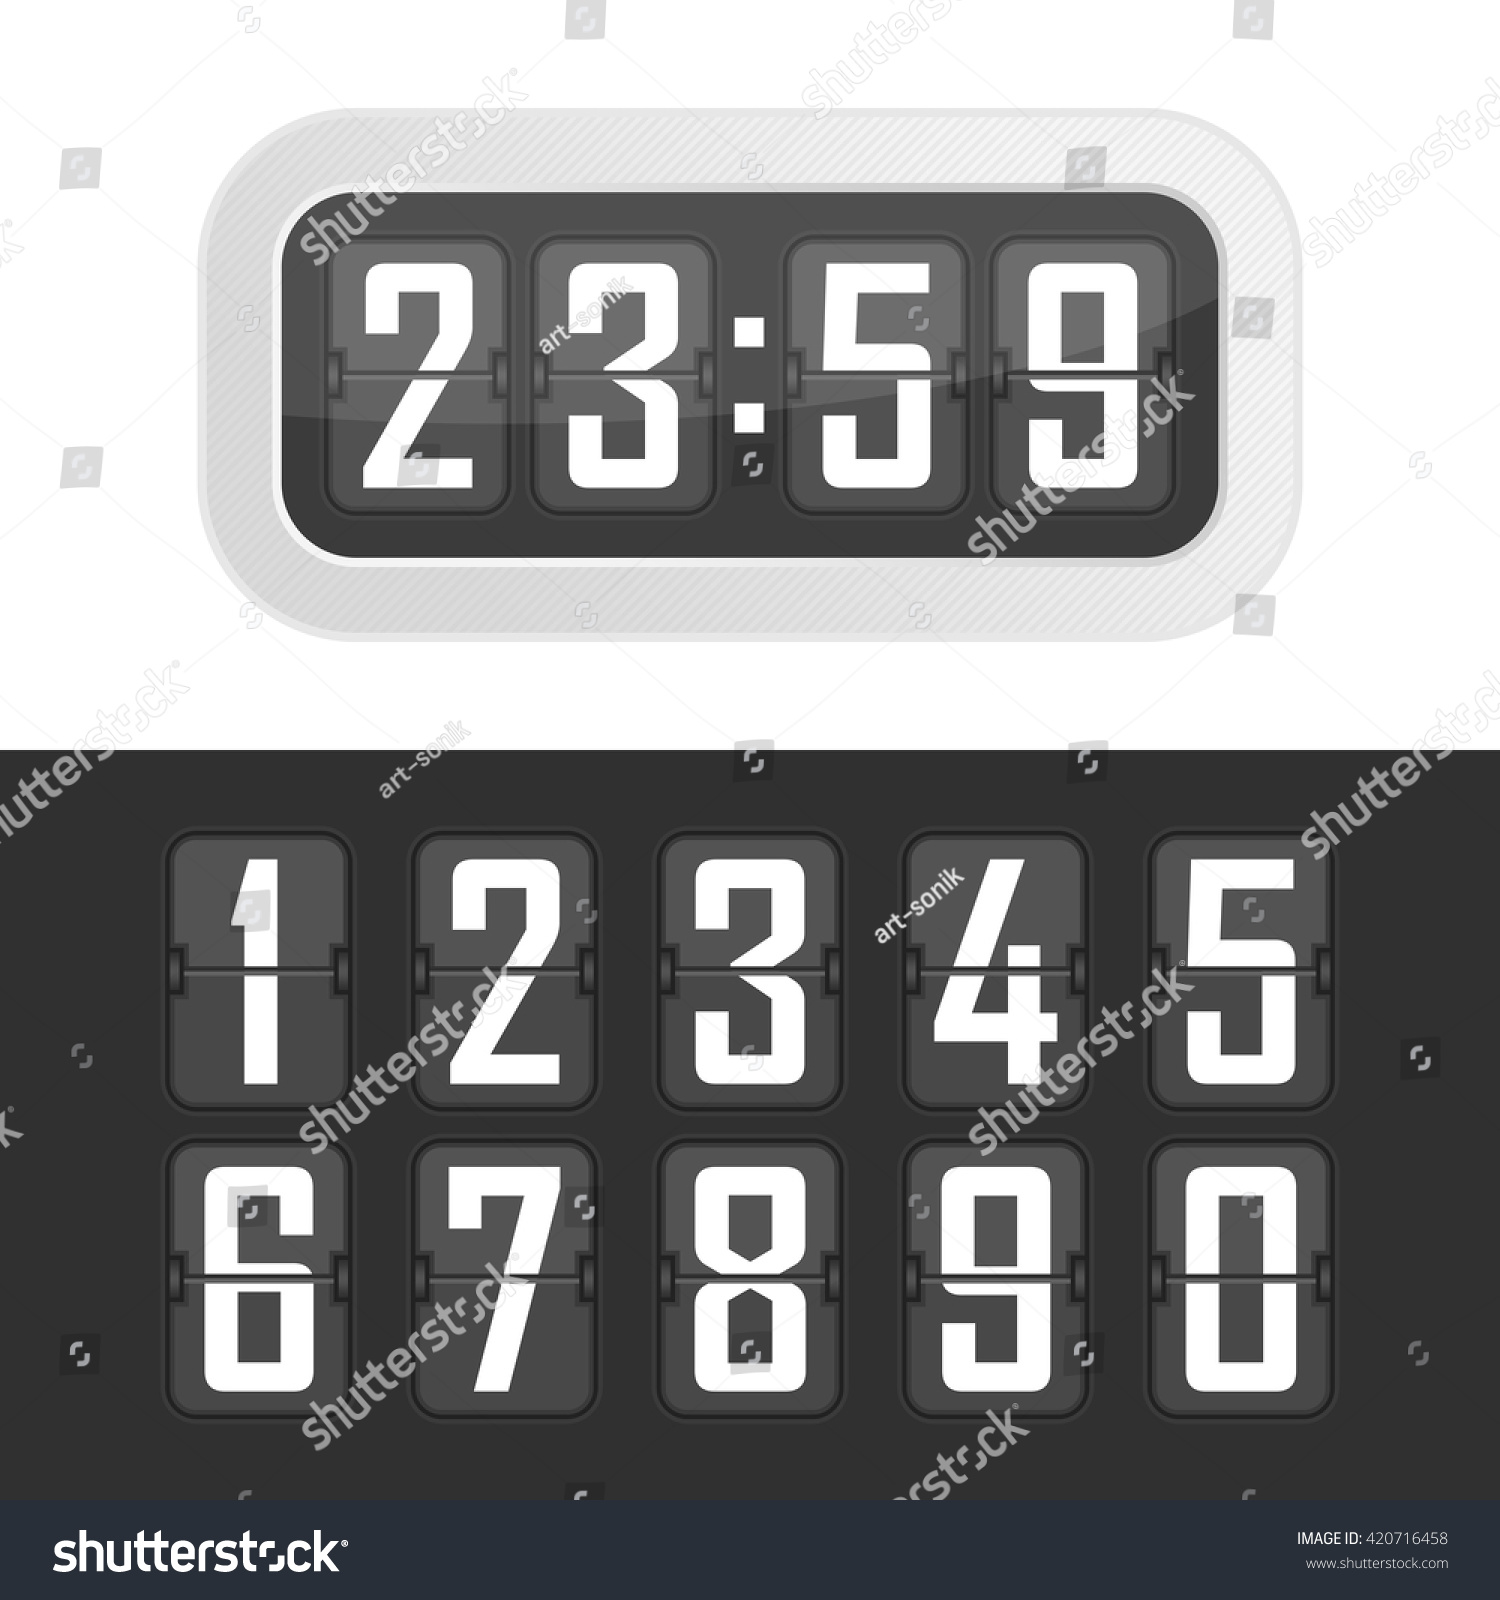 Vector illustration flip clock wall flipping stock vector vector illustration flip clock wall flipping clock and number counter template and all numbers with amipublicfo Choice Image